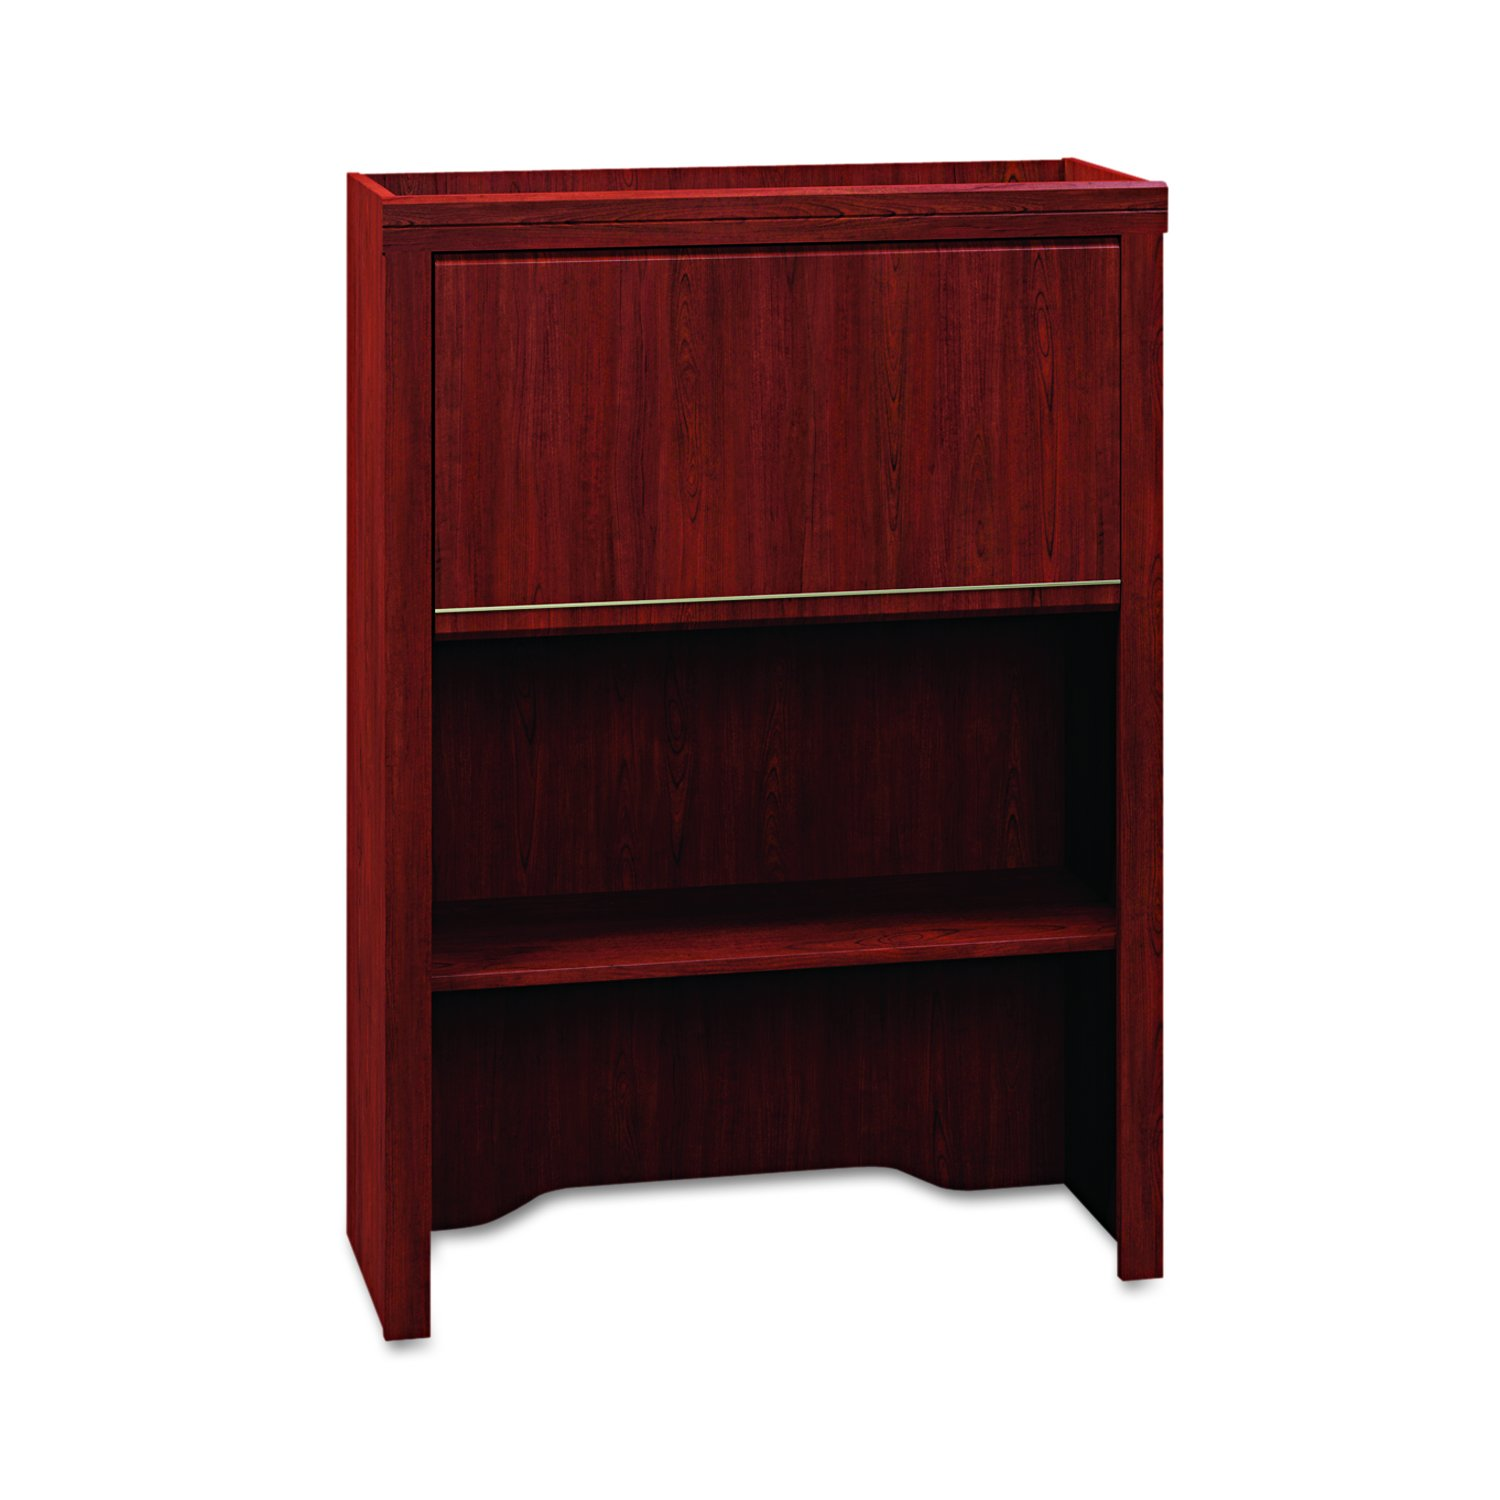 Bush Lateral File Hutch - 30-Inch by 12-Inch by 42-Inch - Harvest Cherry